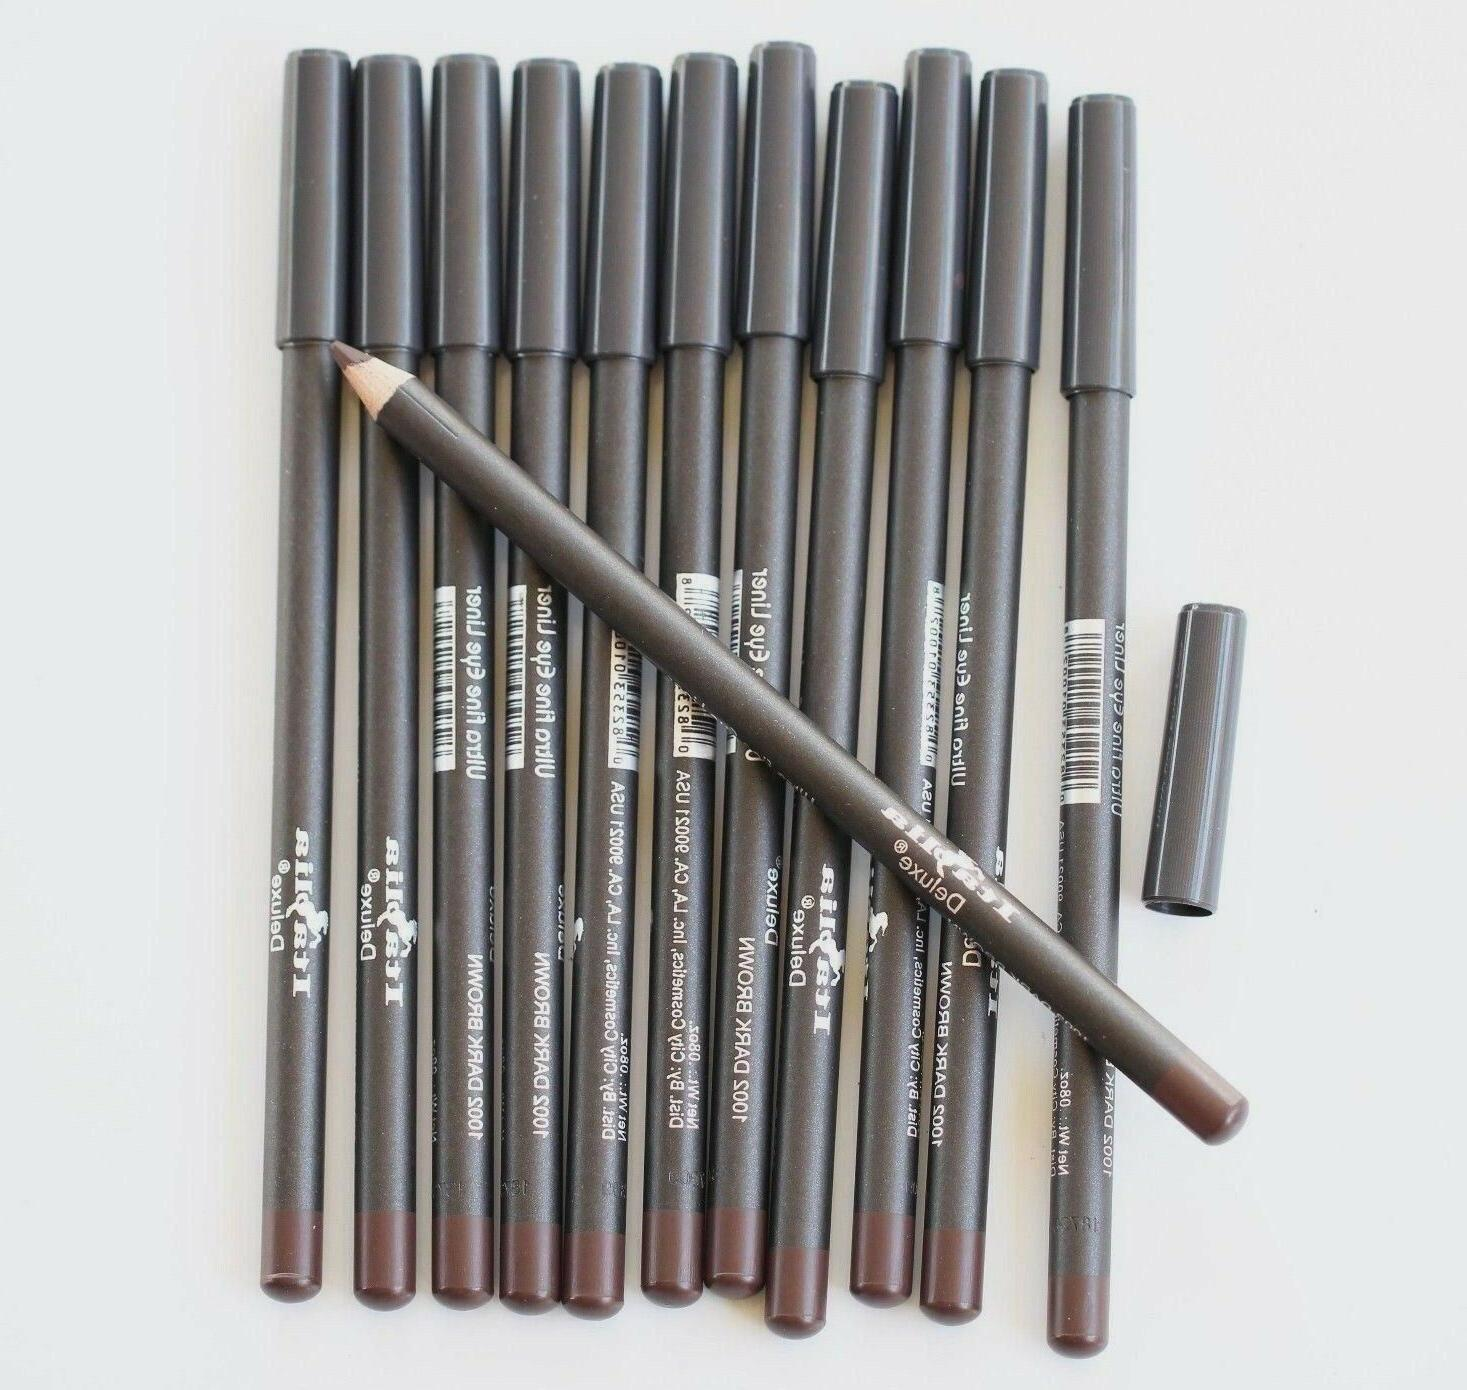 12 pcs 1002 DARK BROWN Italia Deluxe Ultra Fine Eye Liner Ey